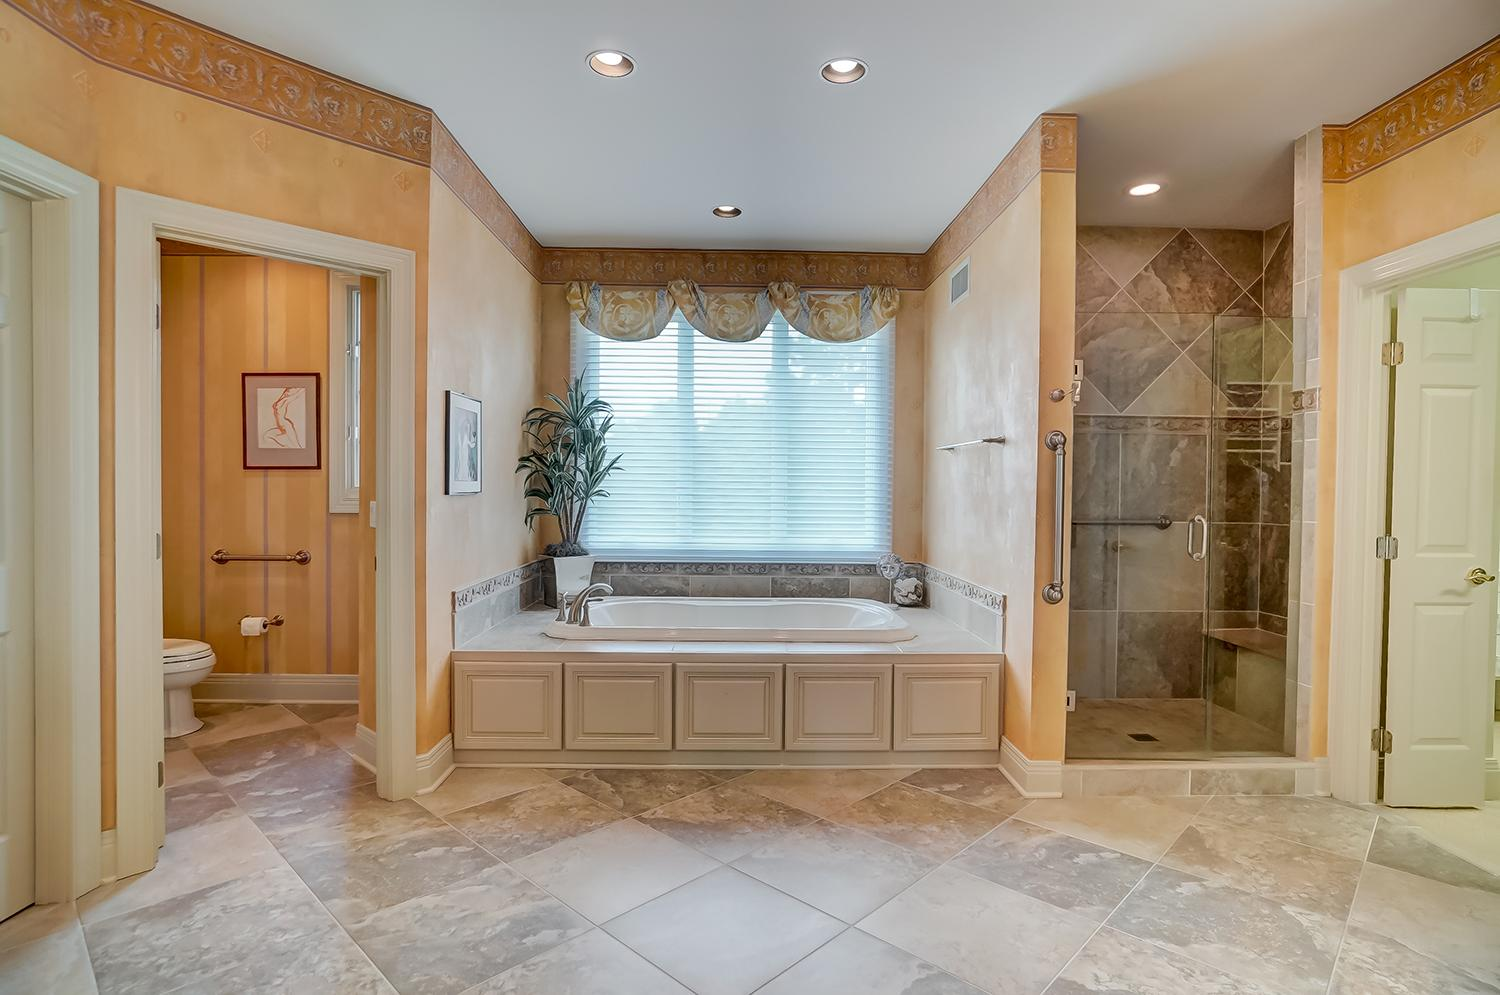 Master bathroom / Image: Wow Video Tours // Published: 6.8.18